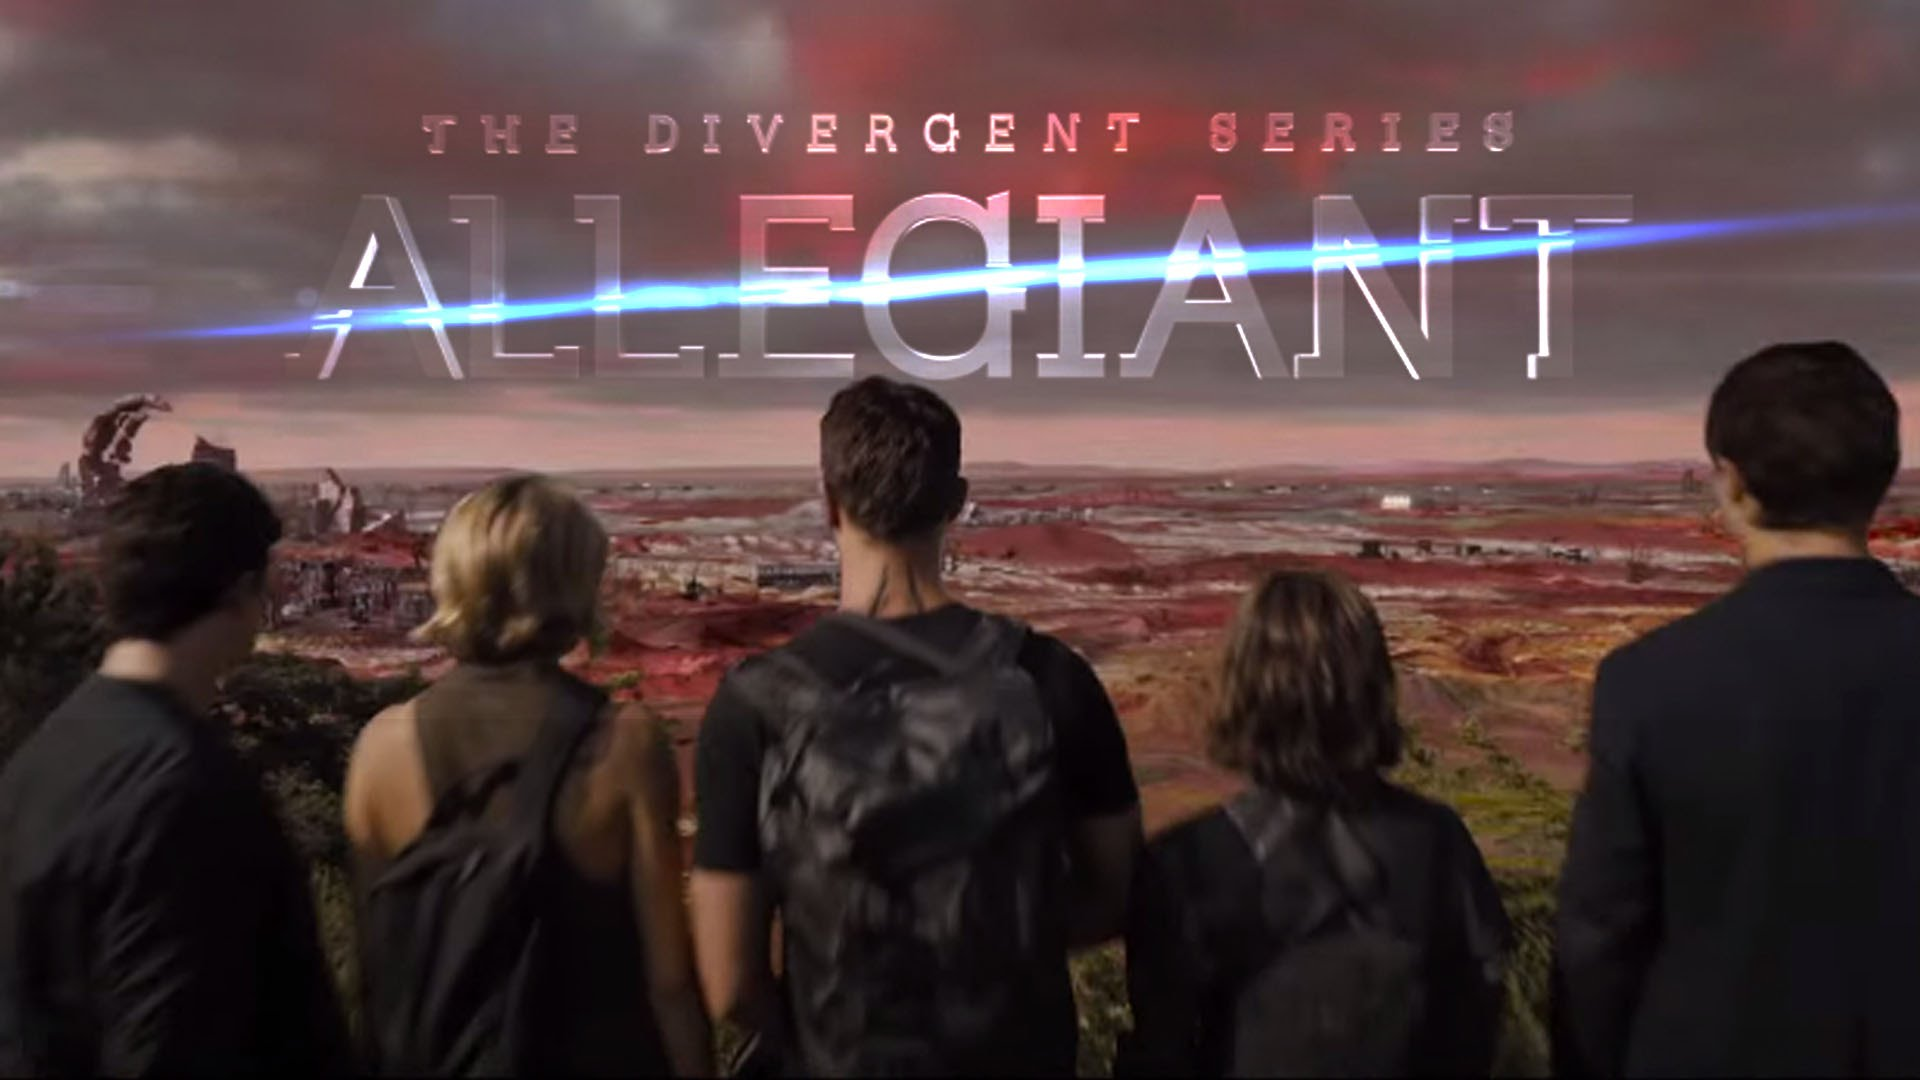 The Divergent Series: Allegiant Desktop wallpapers